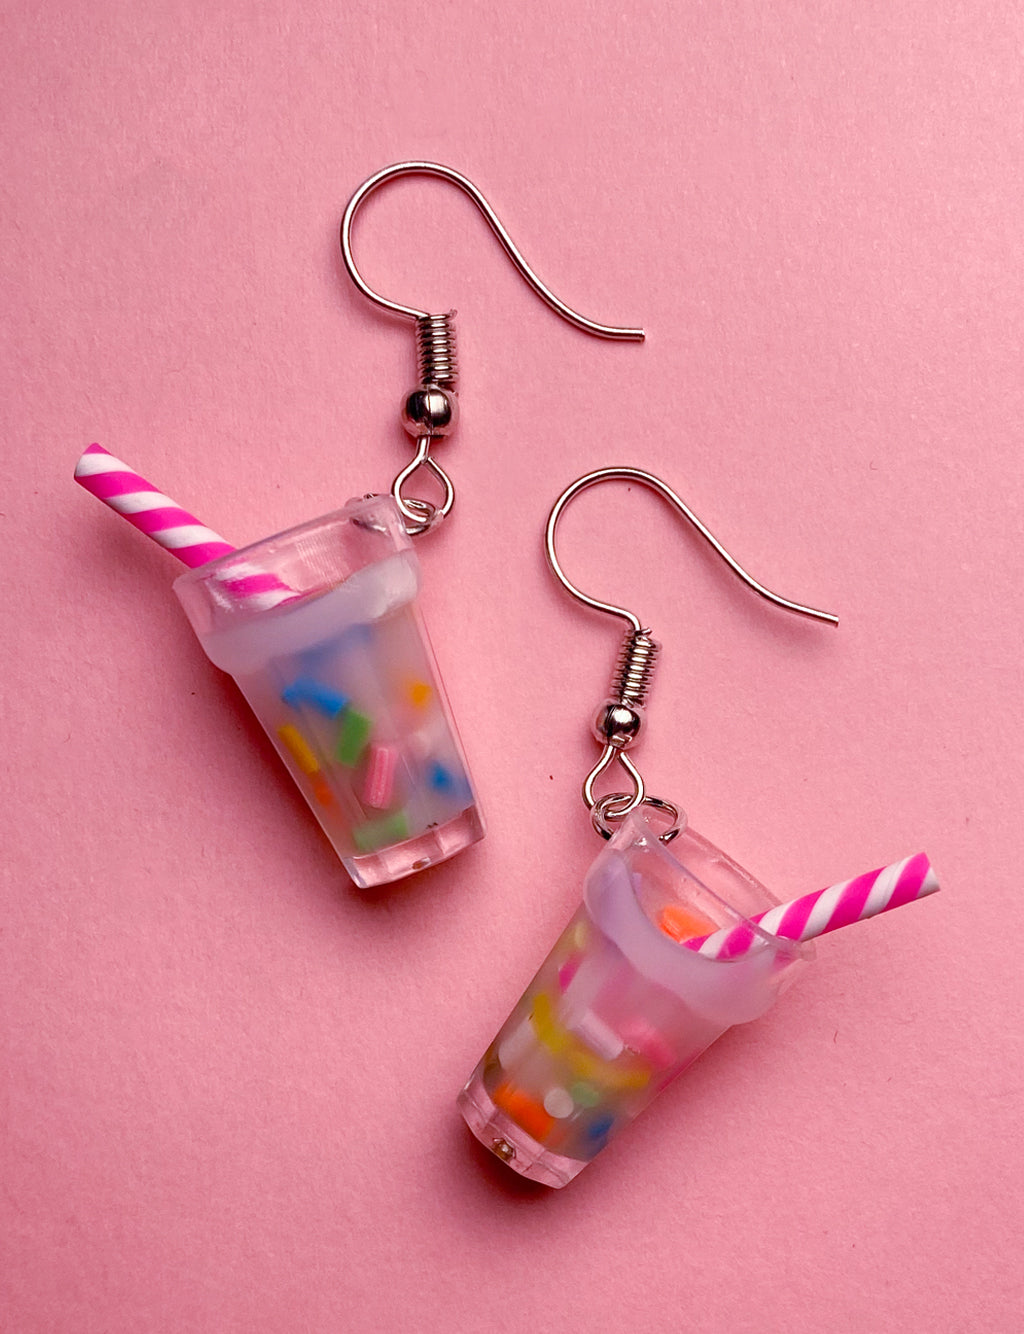 MILKSHAKE EARRINGS - SPRINKLES